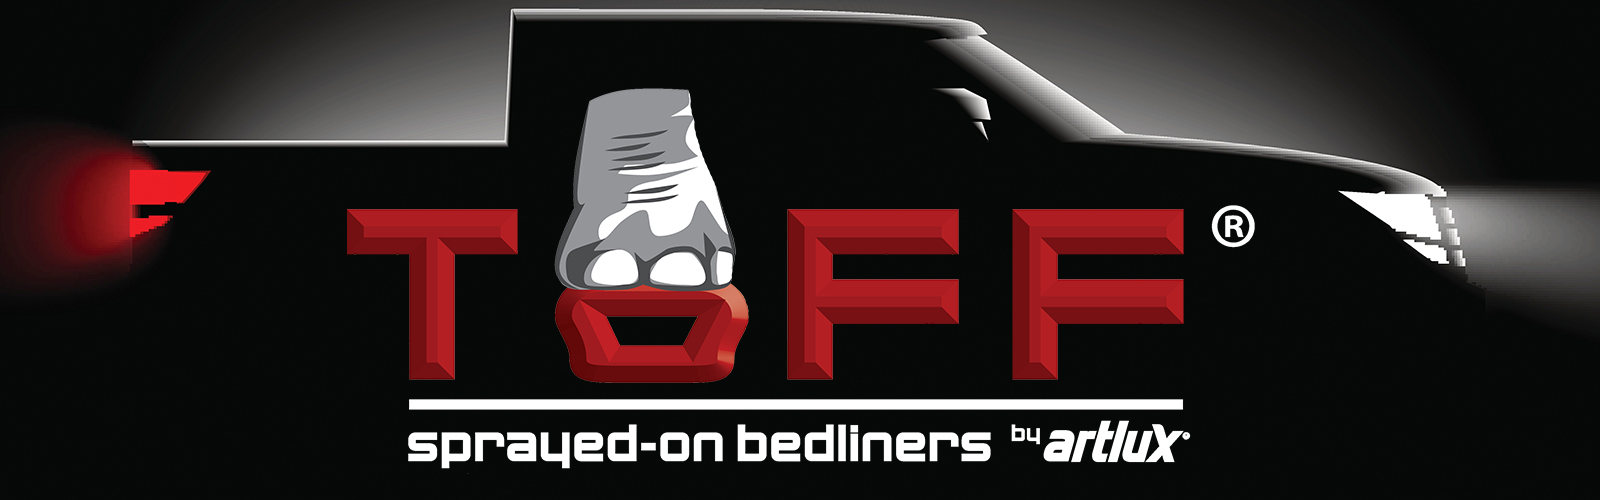 PROTECT YOUR TRUCK WITH TOFF SPRAYED-ON BEDLINERS FROM HEALEY BROTHERS